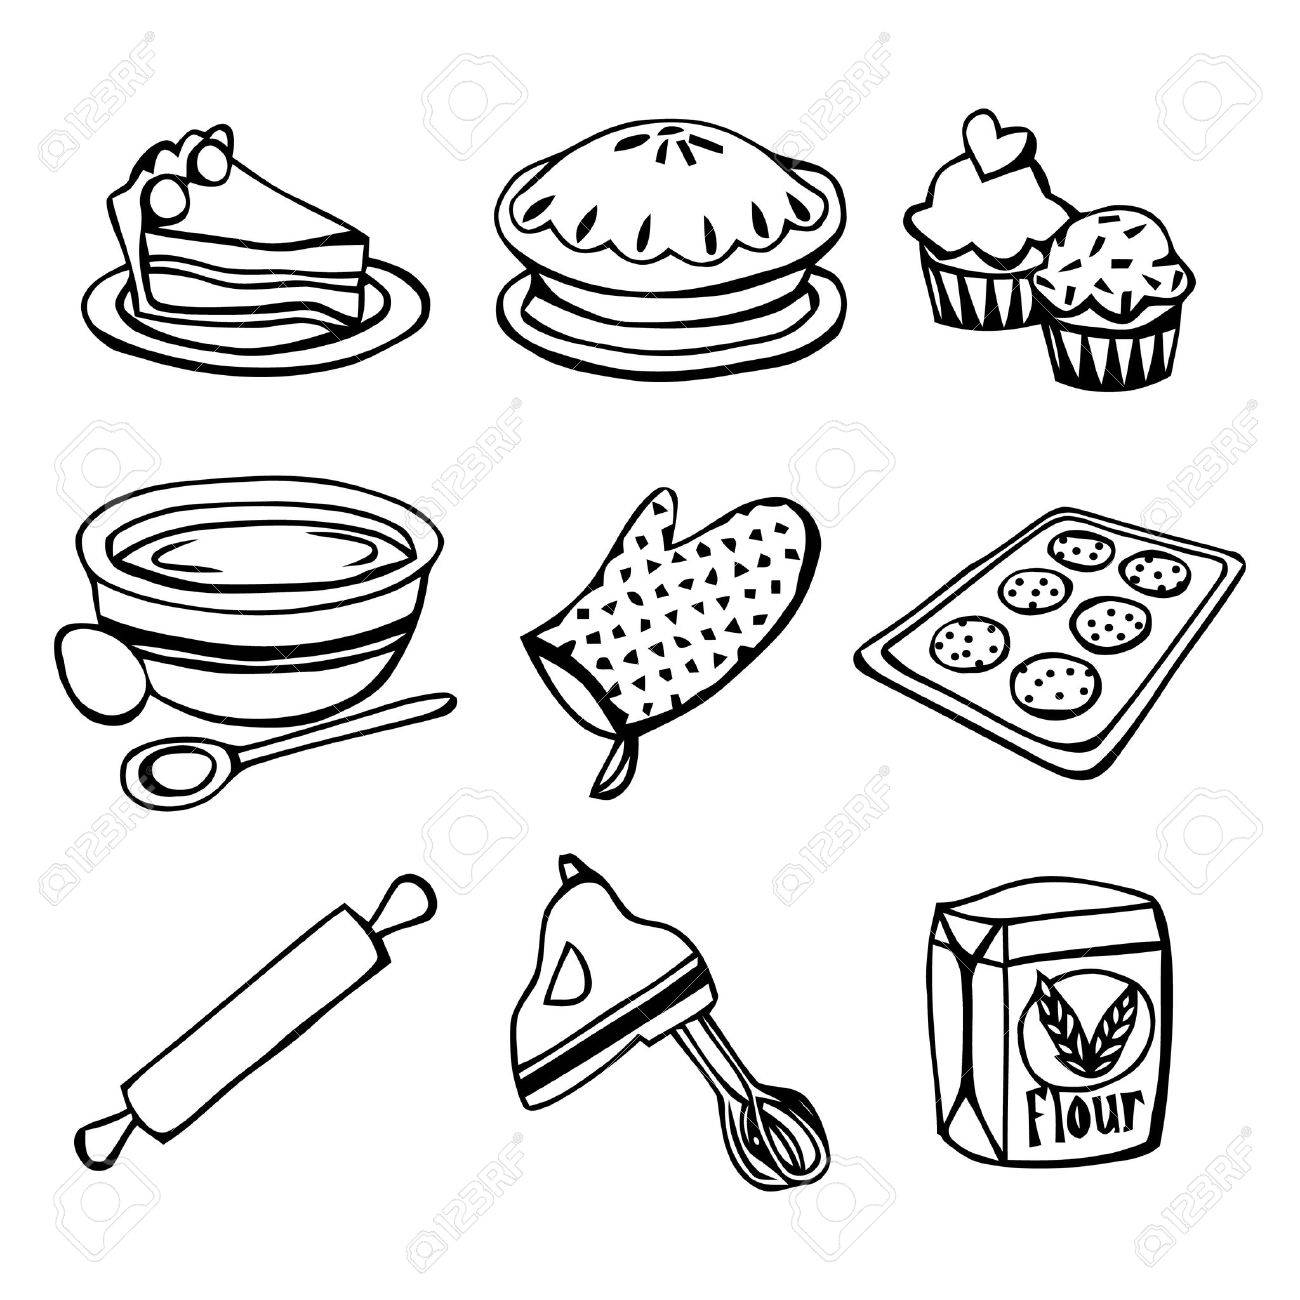 A black and white illustration baking related icons.